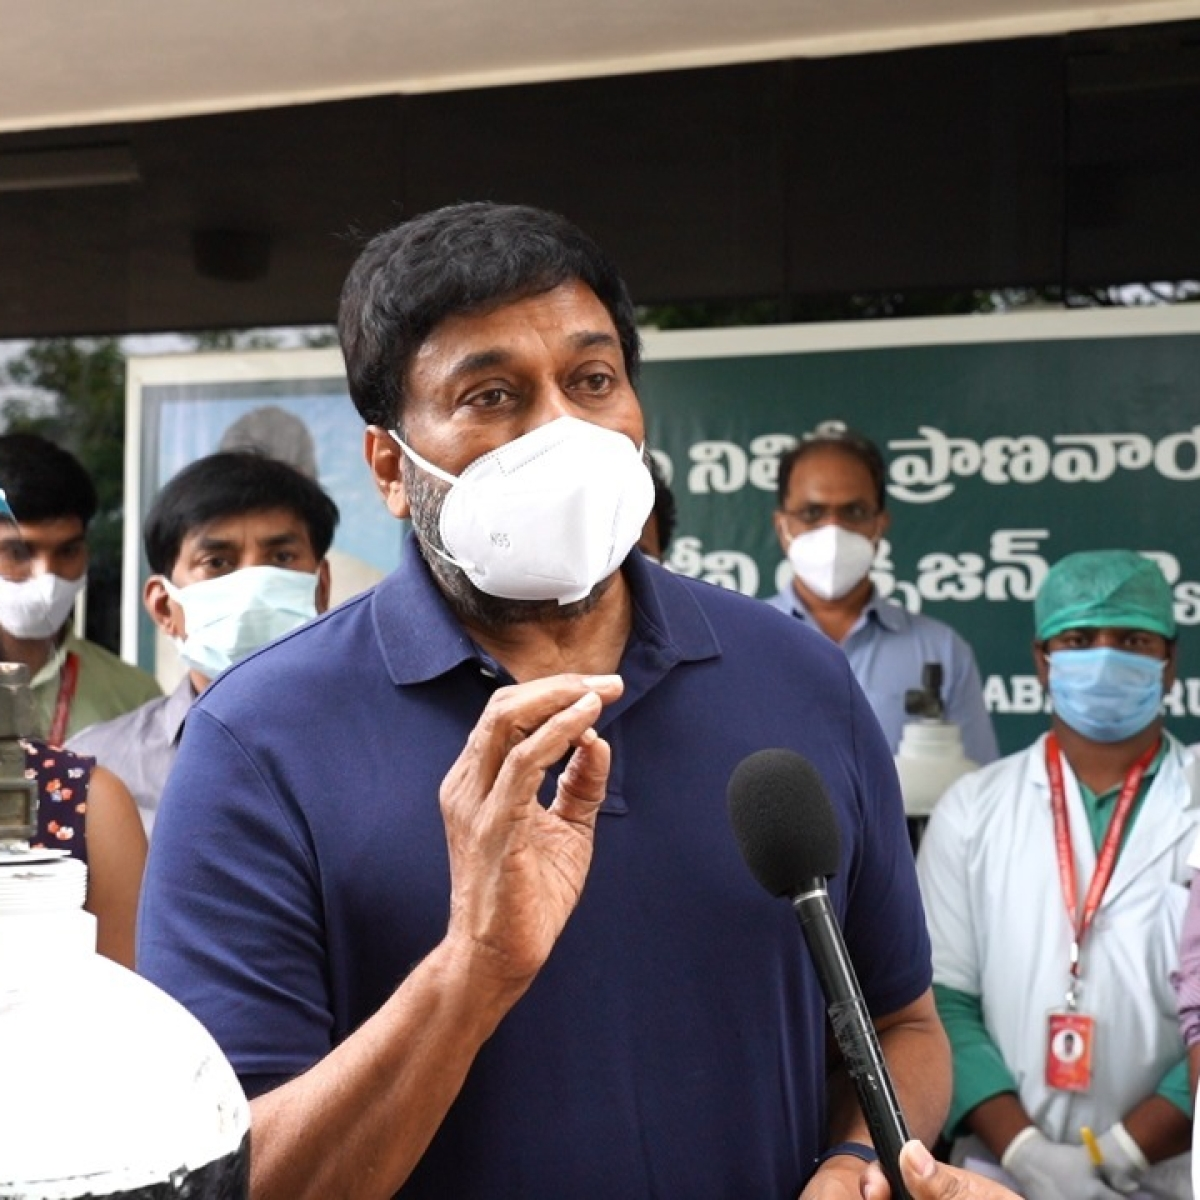 Chiranjeevi, Ram Charan inspect oxygen cylinders themselves while providing COVID relief in Telangana and Andhra Pradesh